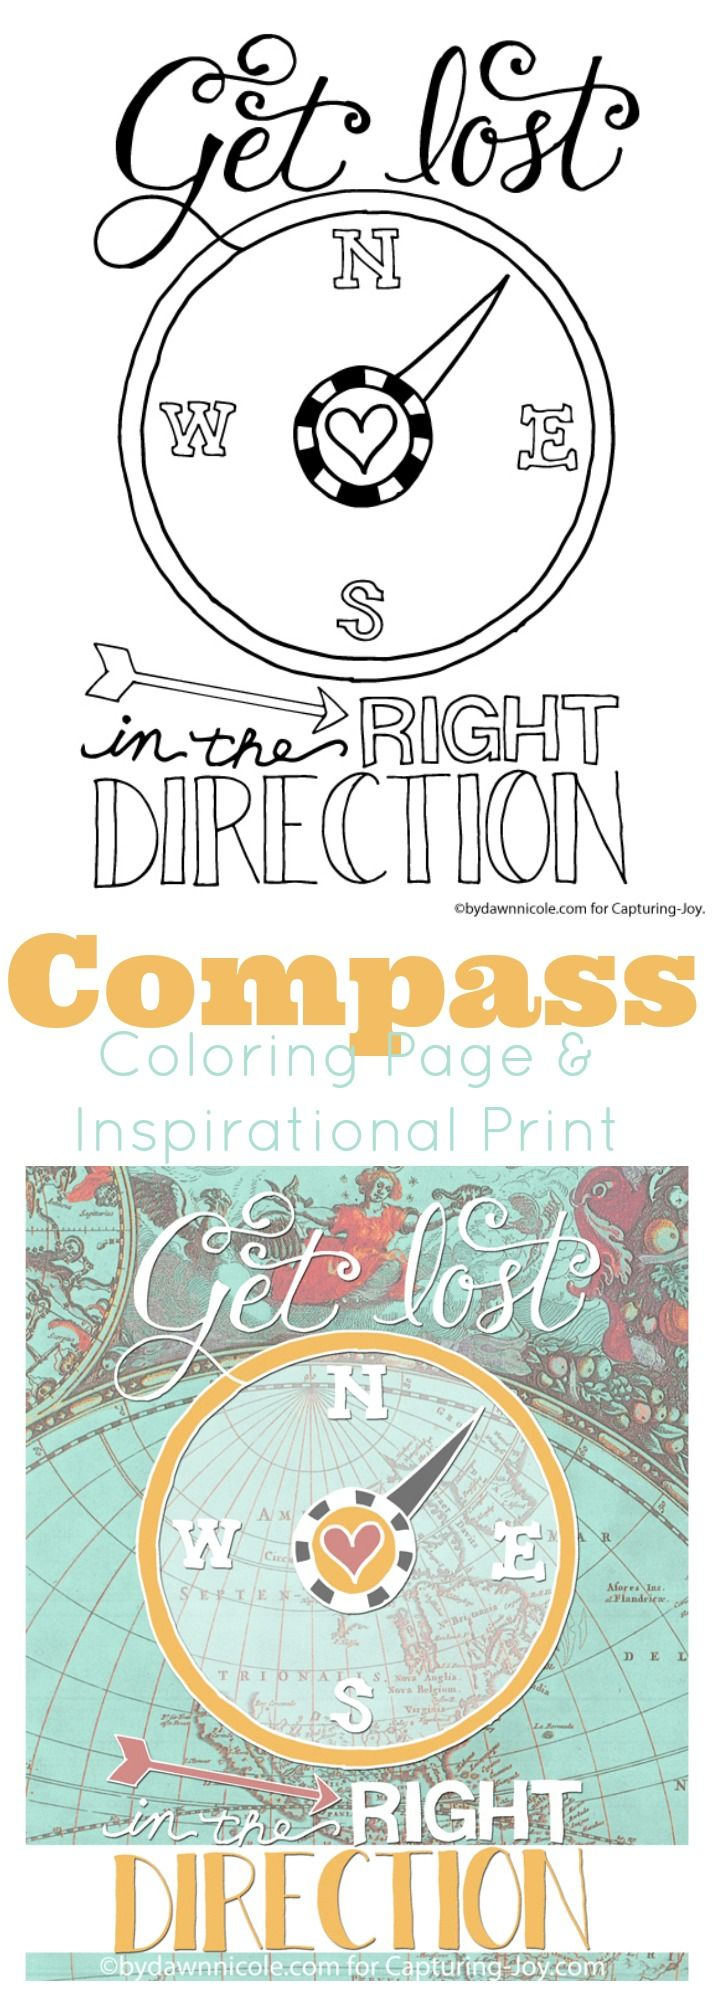 online shopping for dresses Compass coloring page and inspirational print the kids will love to color